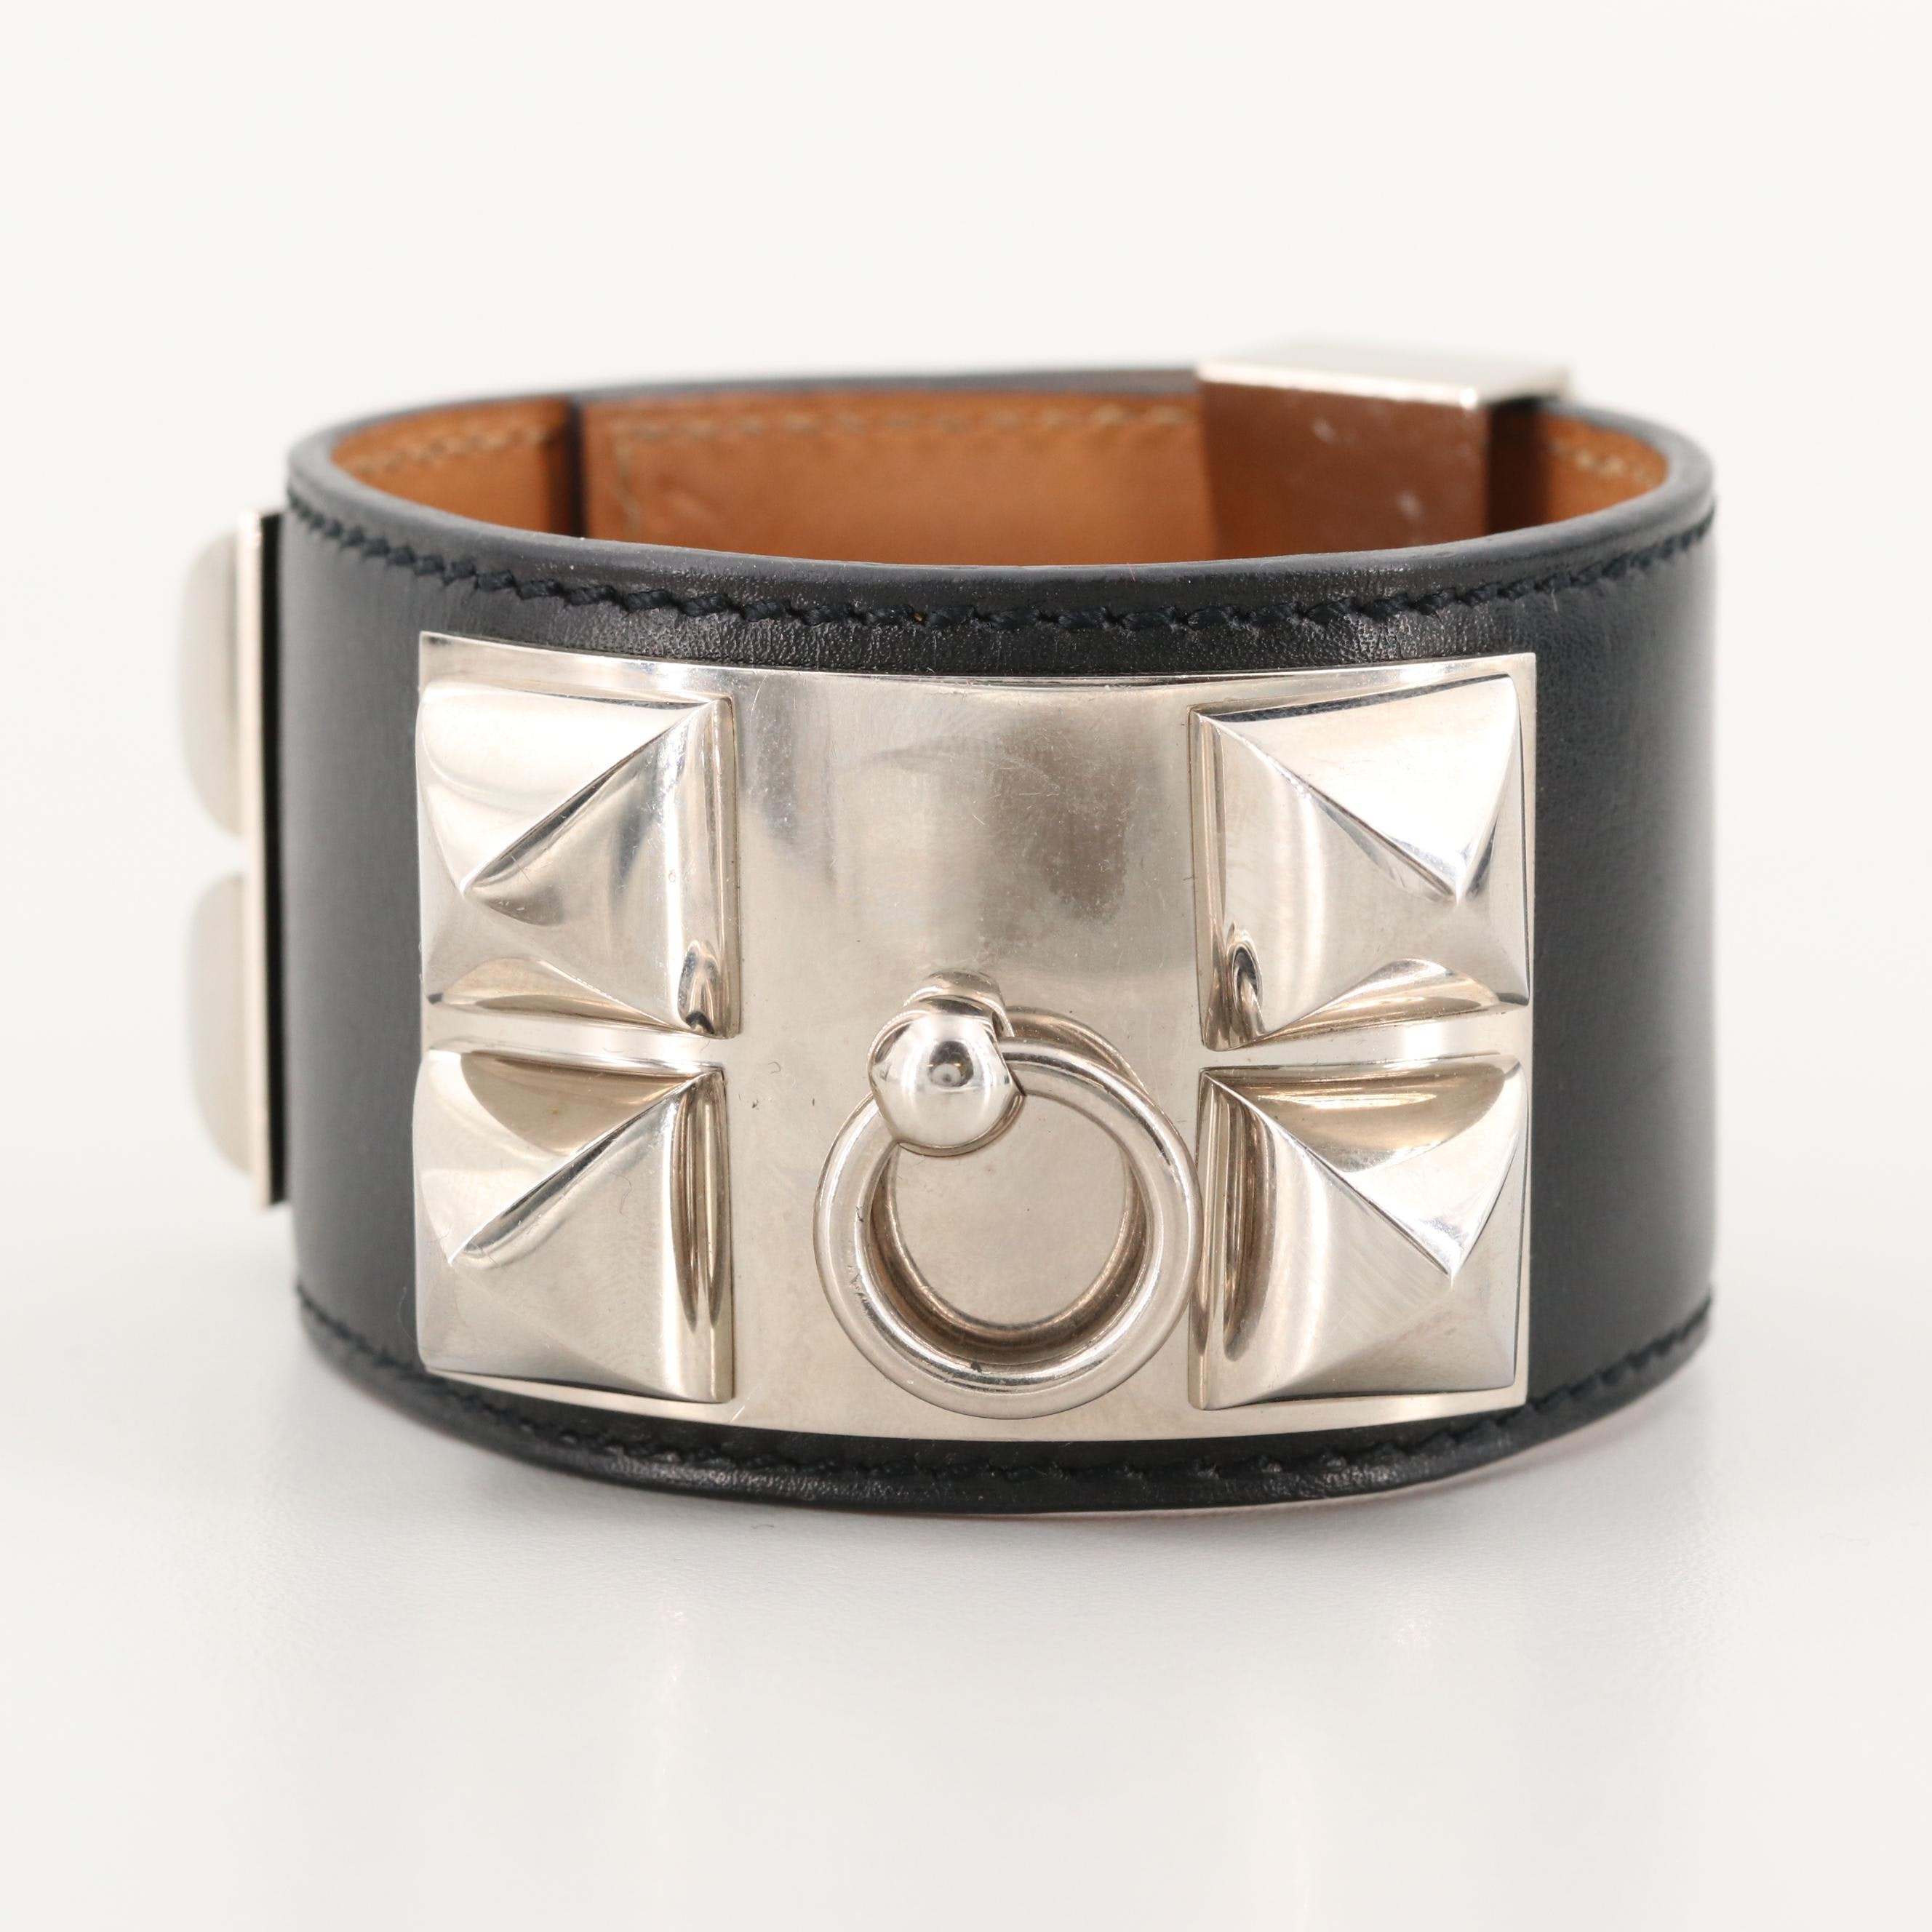 "Hermès ""Collier de Chien"" Leather Cuff Bracelet"